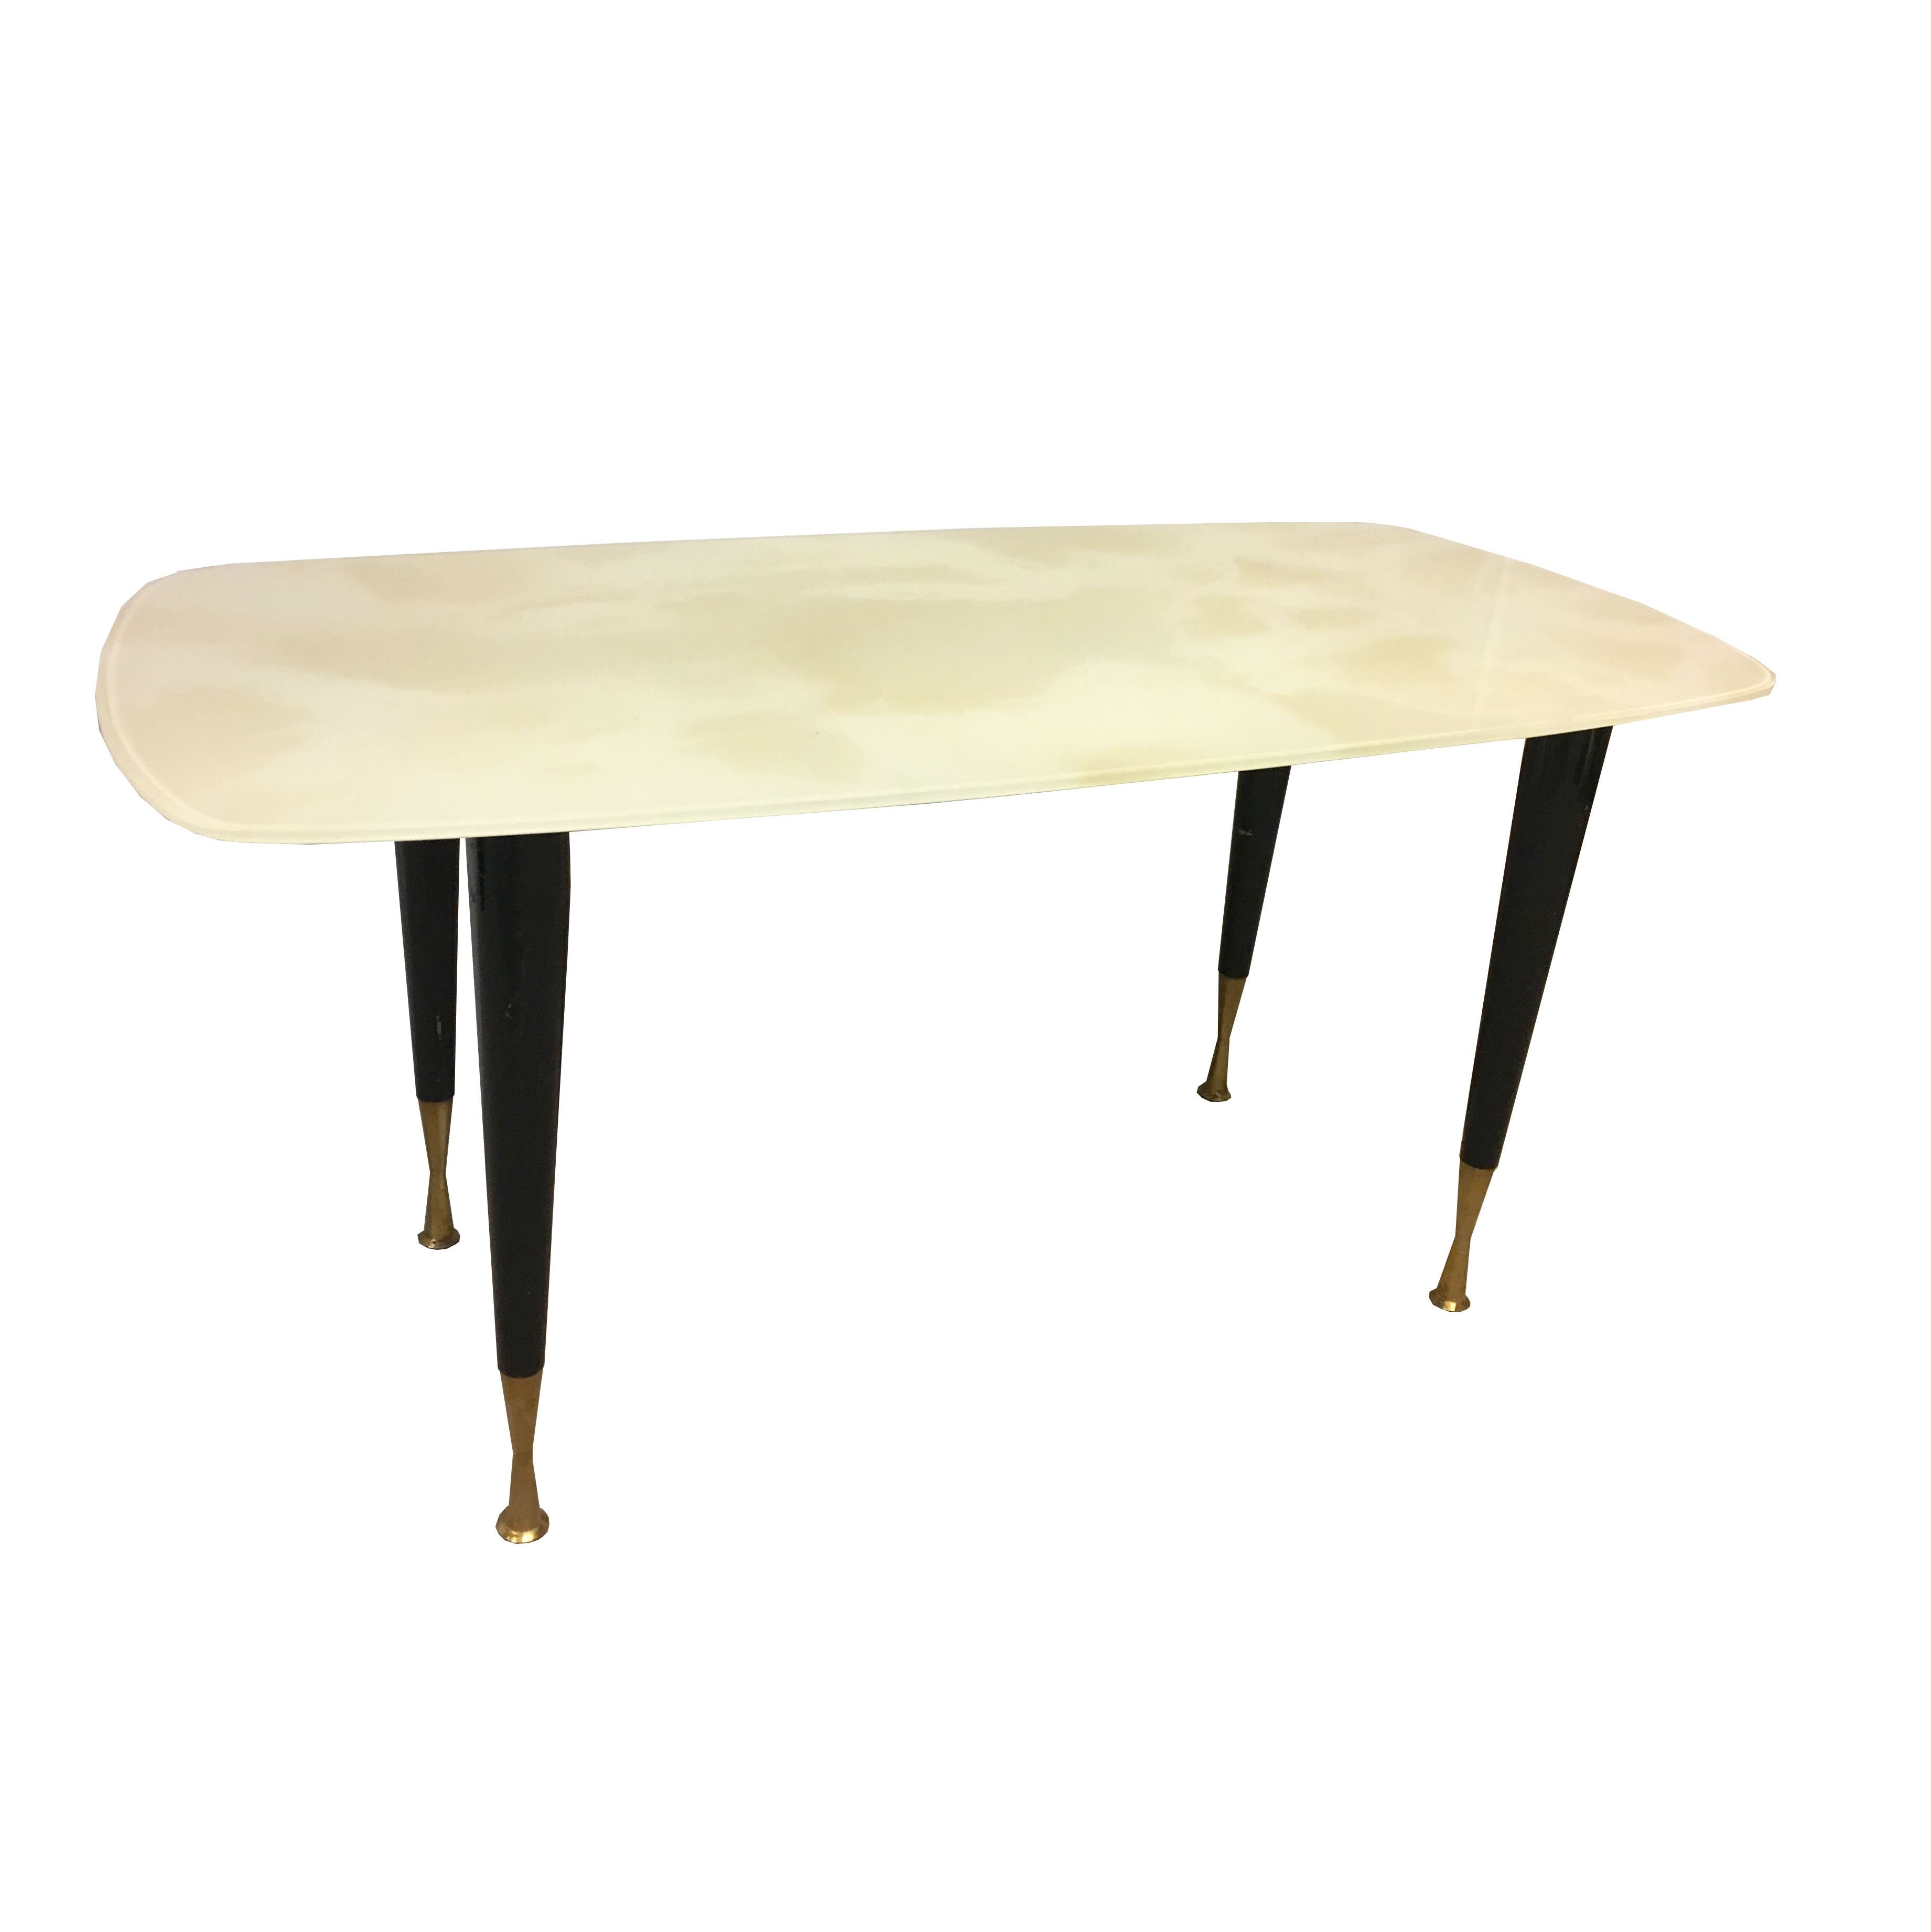 Coffee Table With Metal Frame, Brass Legs & White Marbled